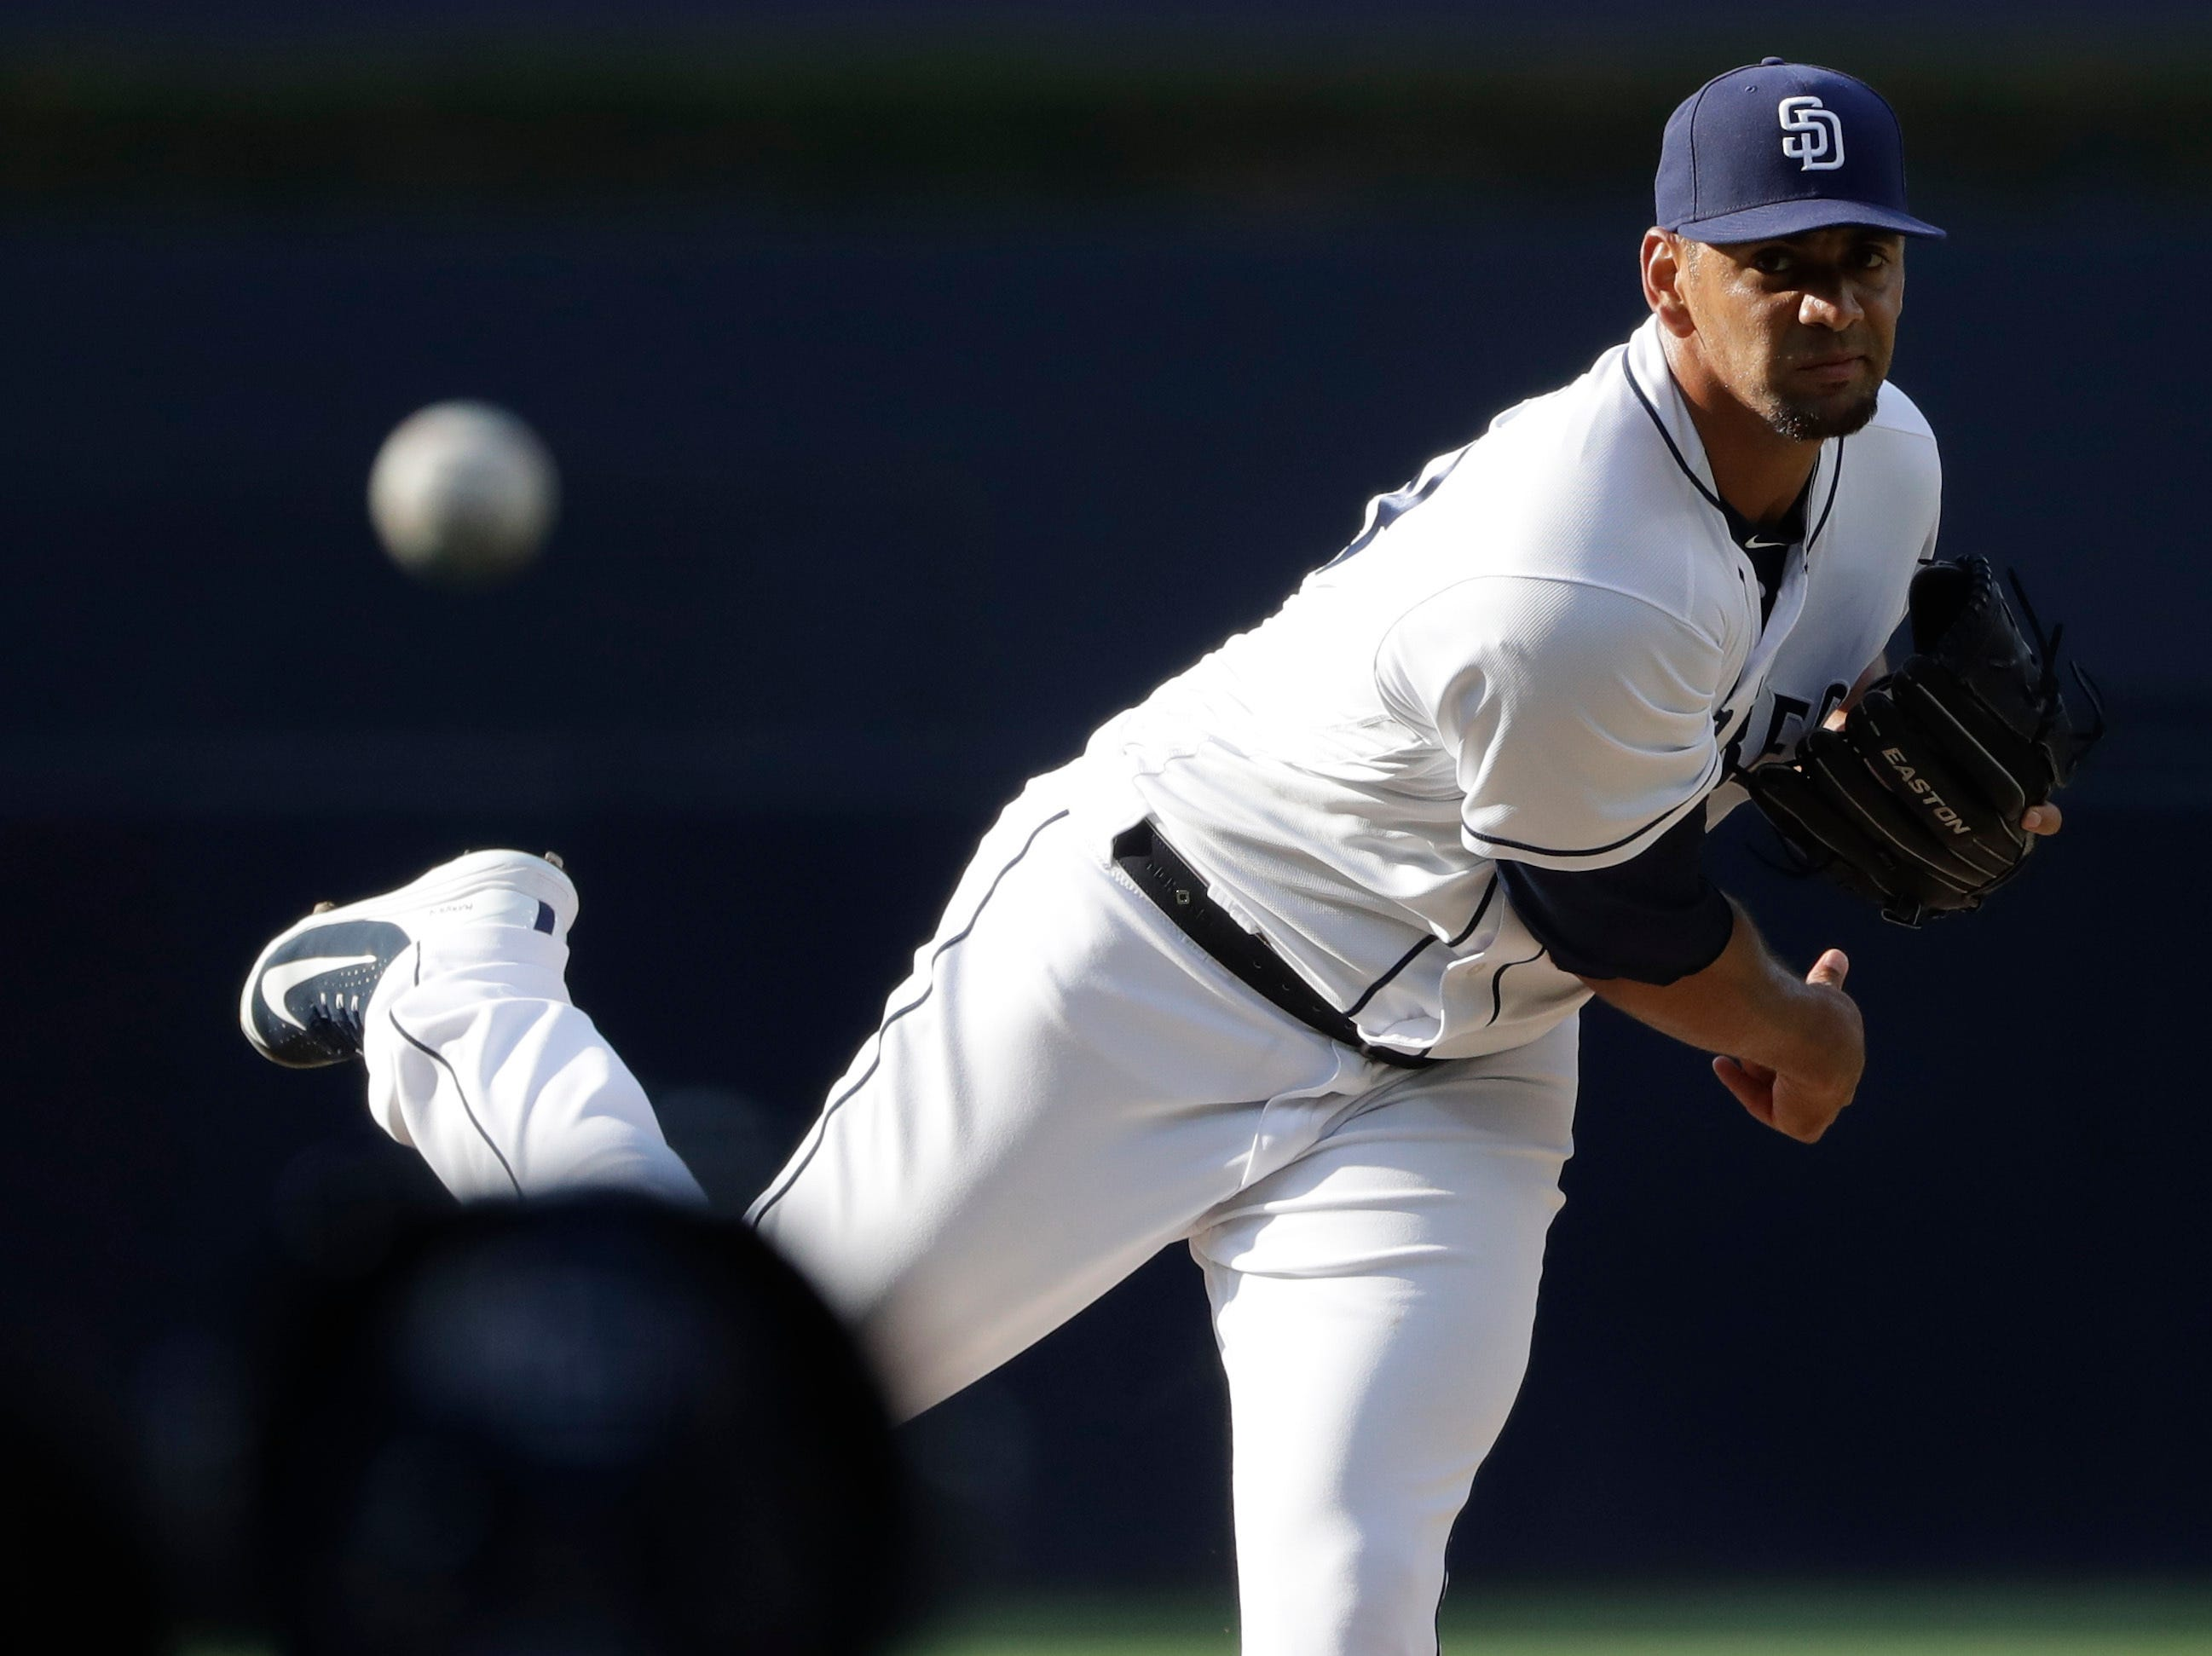 San Diego Padres starting pitcher Tyson Ross works against an Arizona Diamondbacks batter during the first inning of a game Saturday, July 28, 2018, in San Diego.